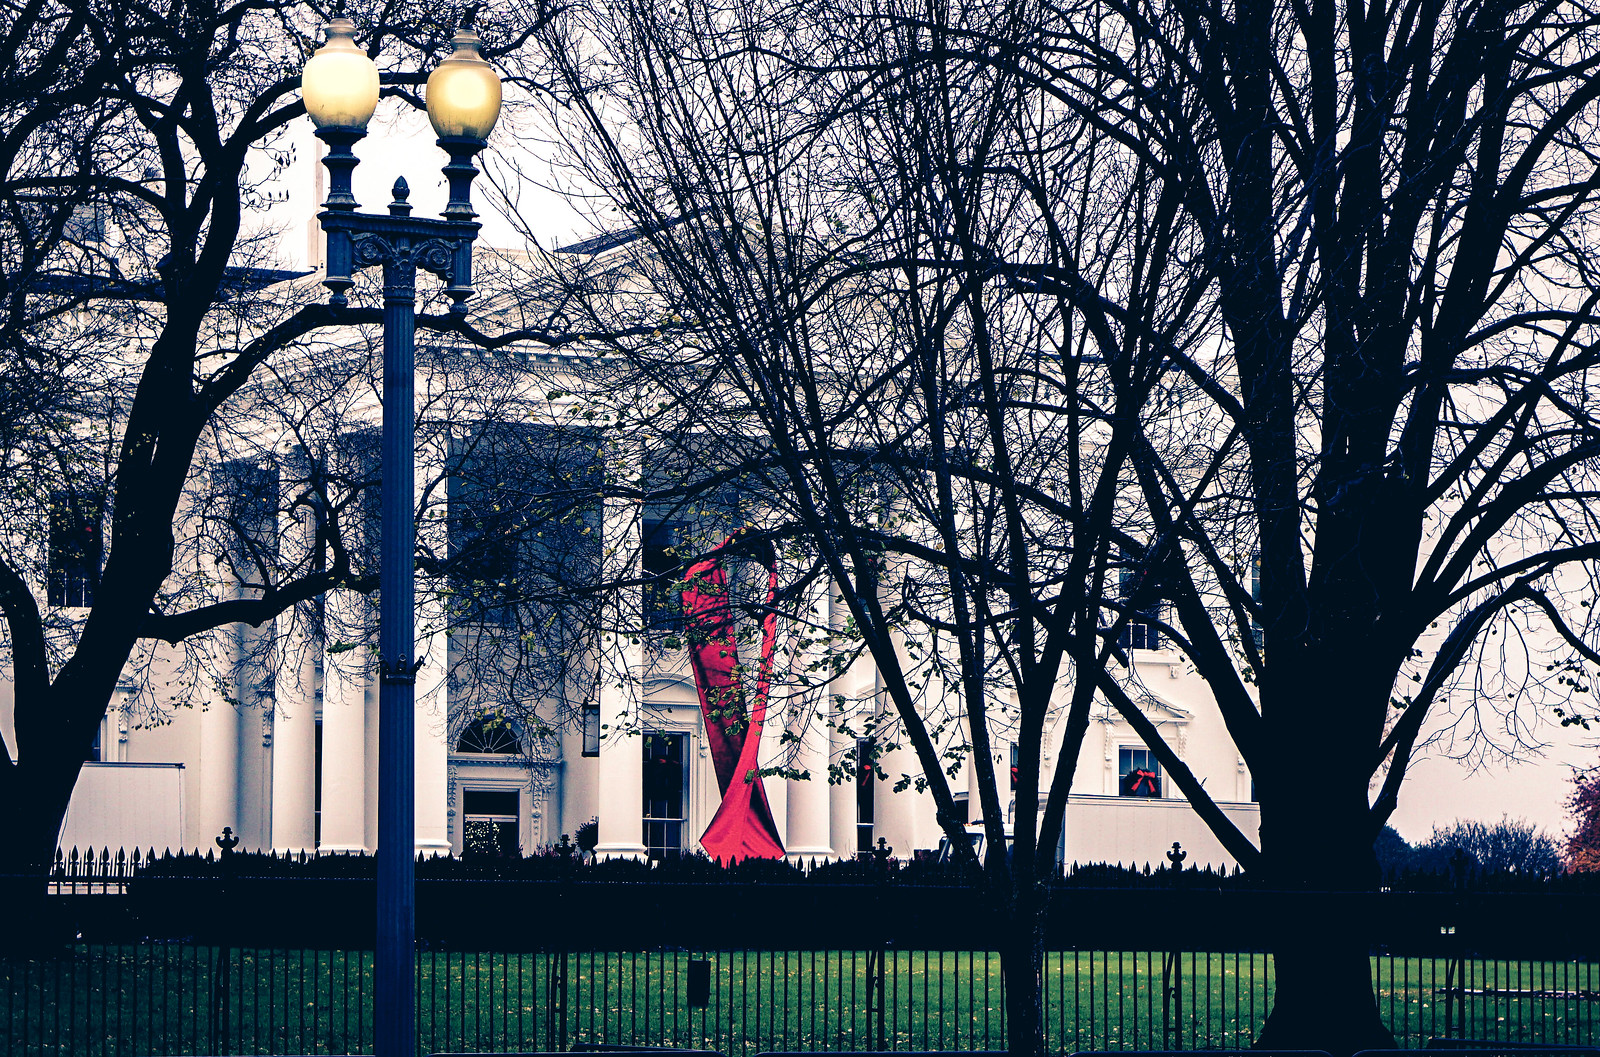 2019.12.01 Red Ribbon on White House, Washington, DC USA 336 01012